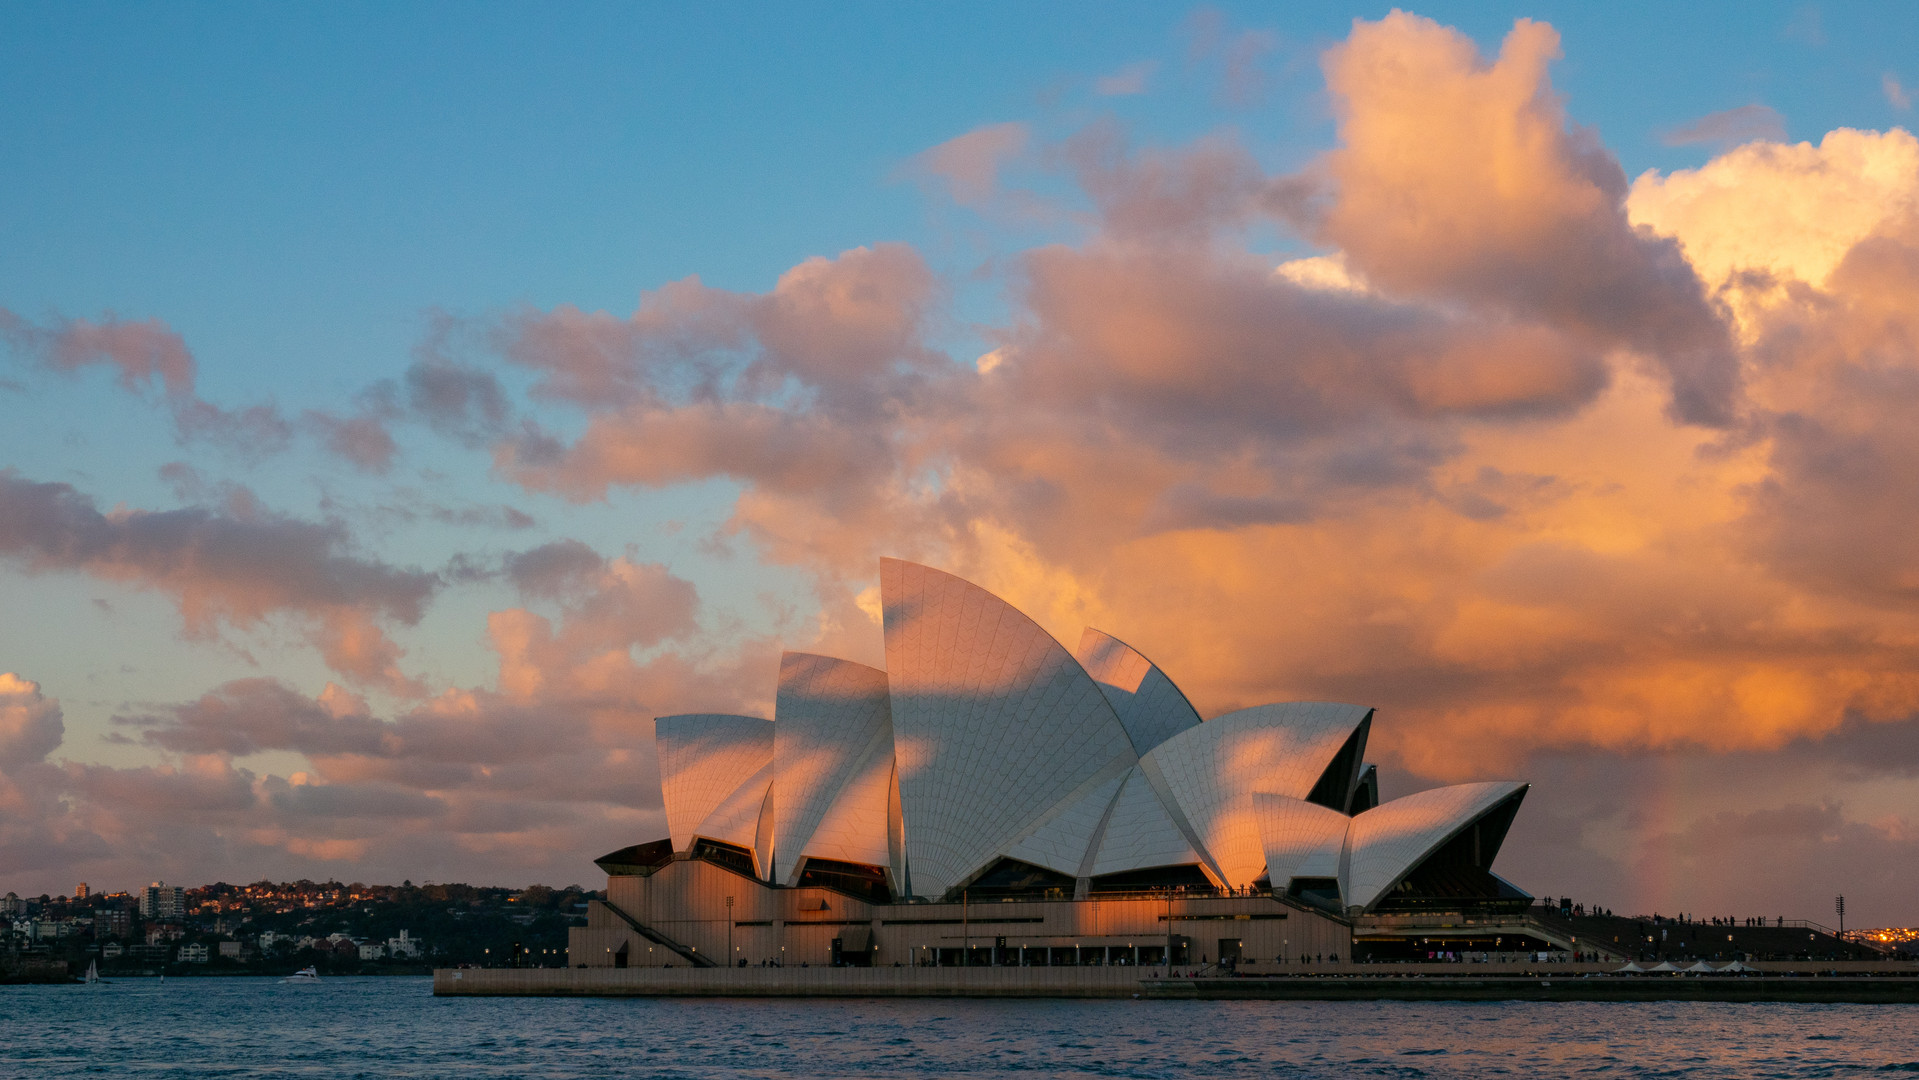 Sunset at the Opera house